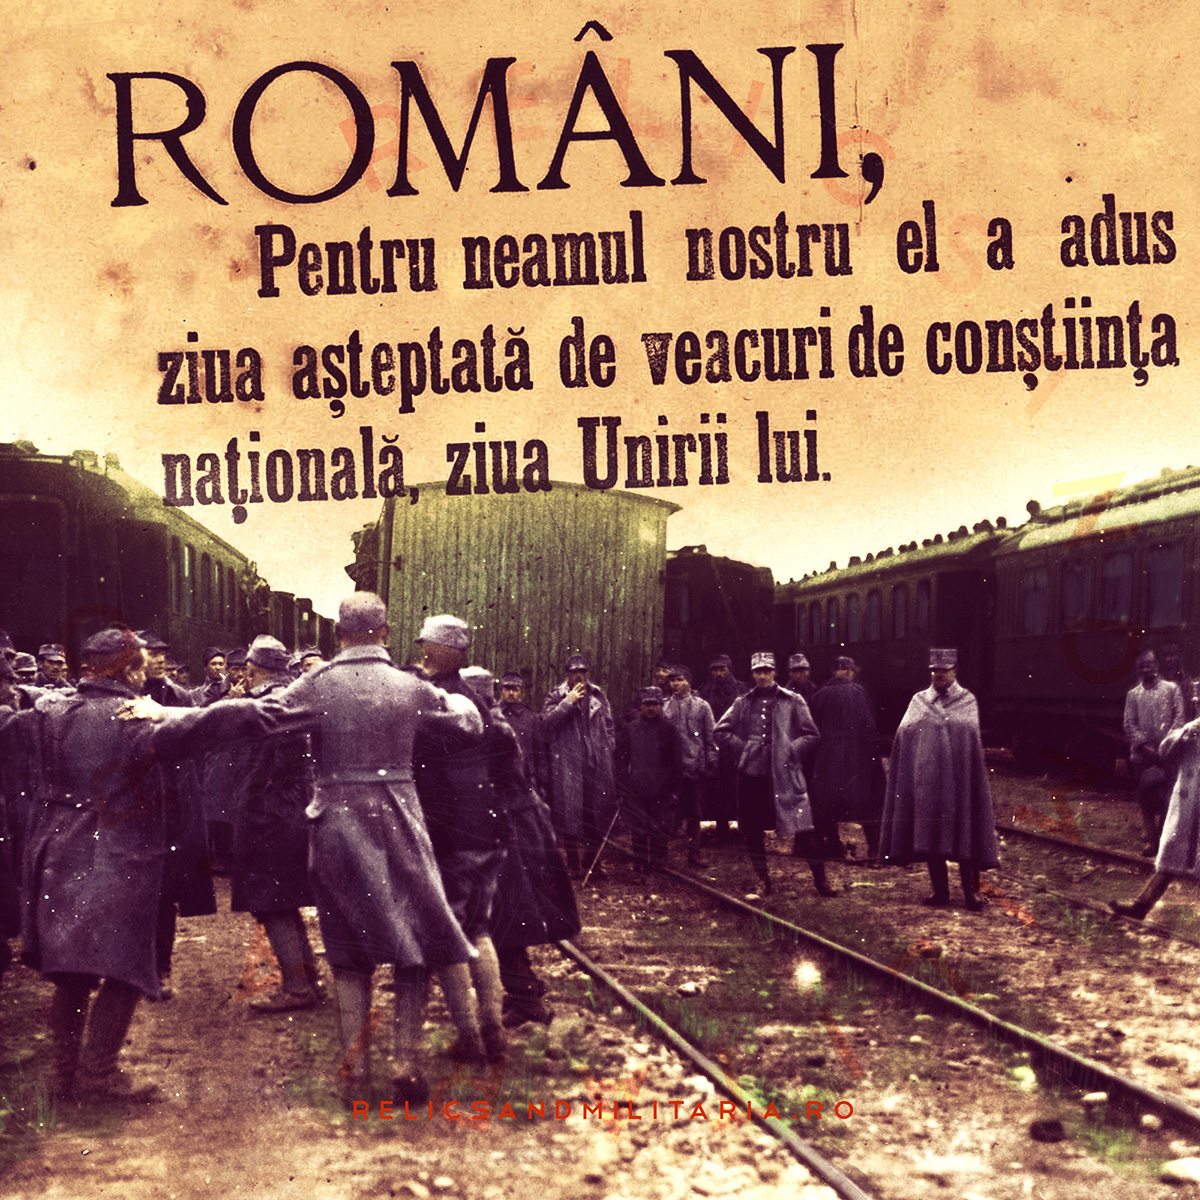 World War One ends, Romania is Unified